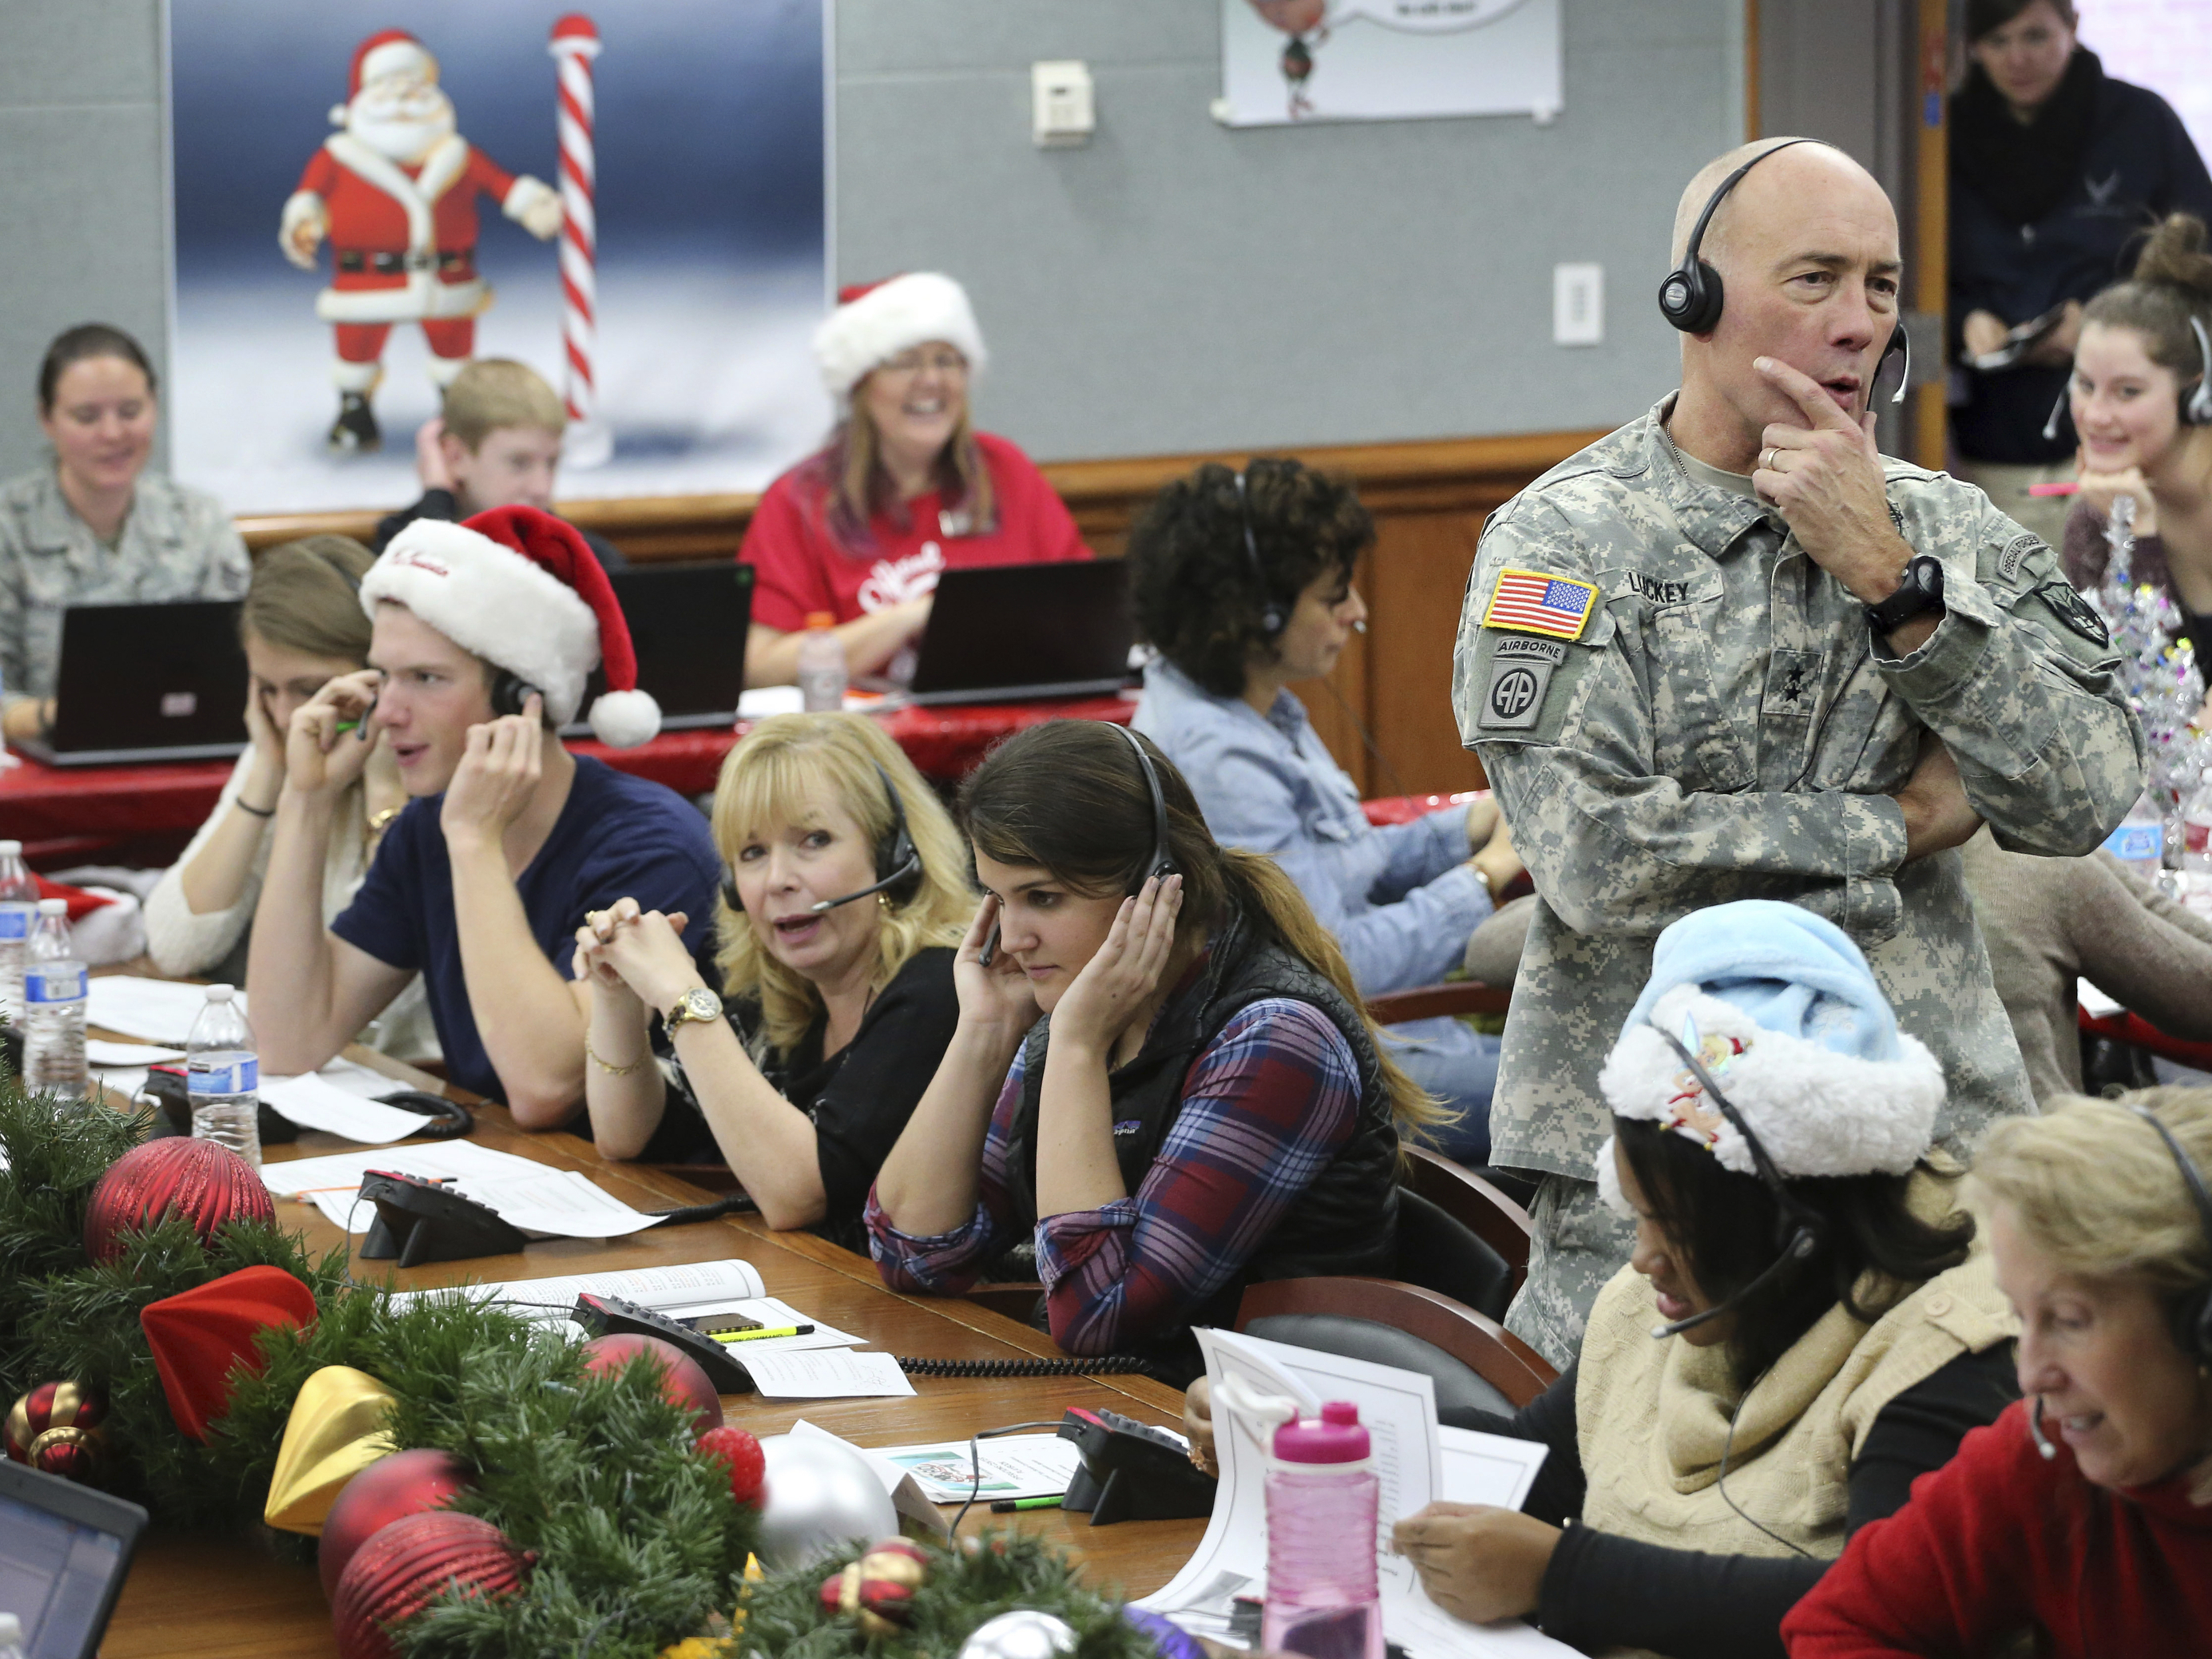 Tracking Santa Tradition Is Serious Fun For NORAD